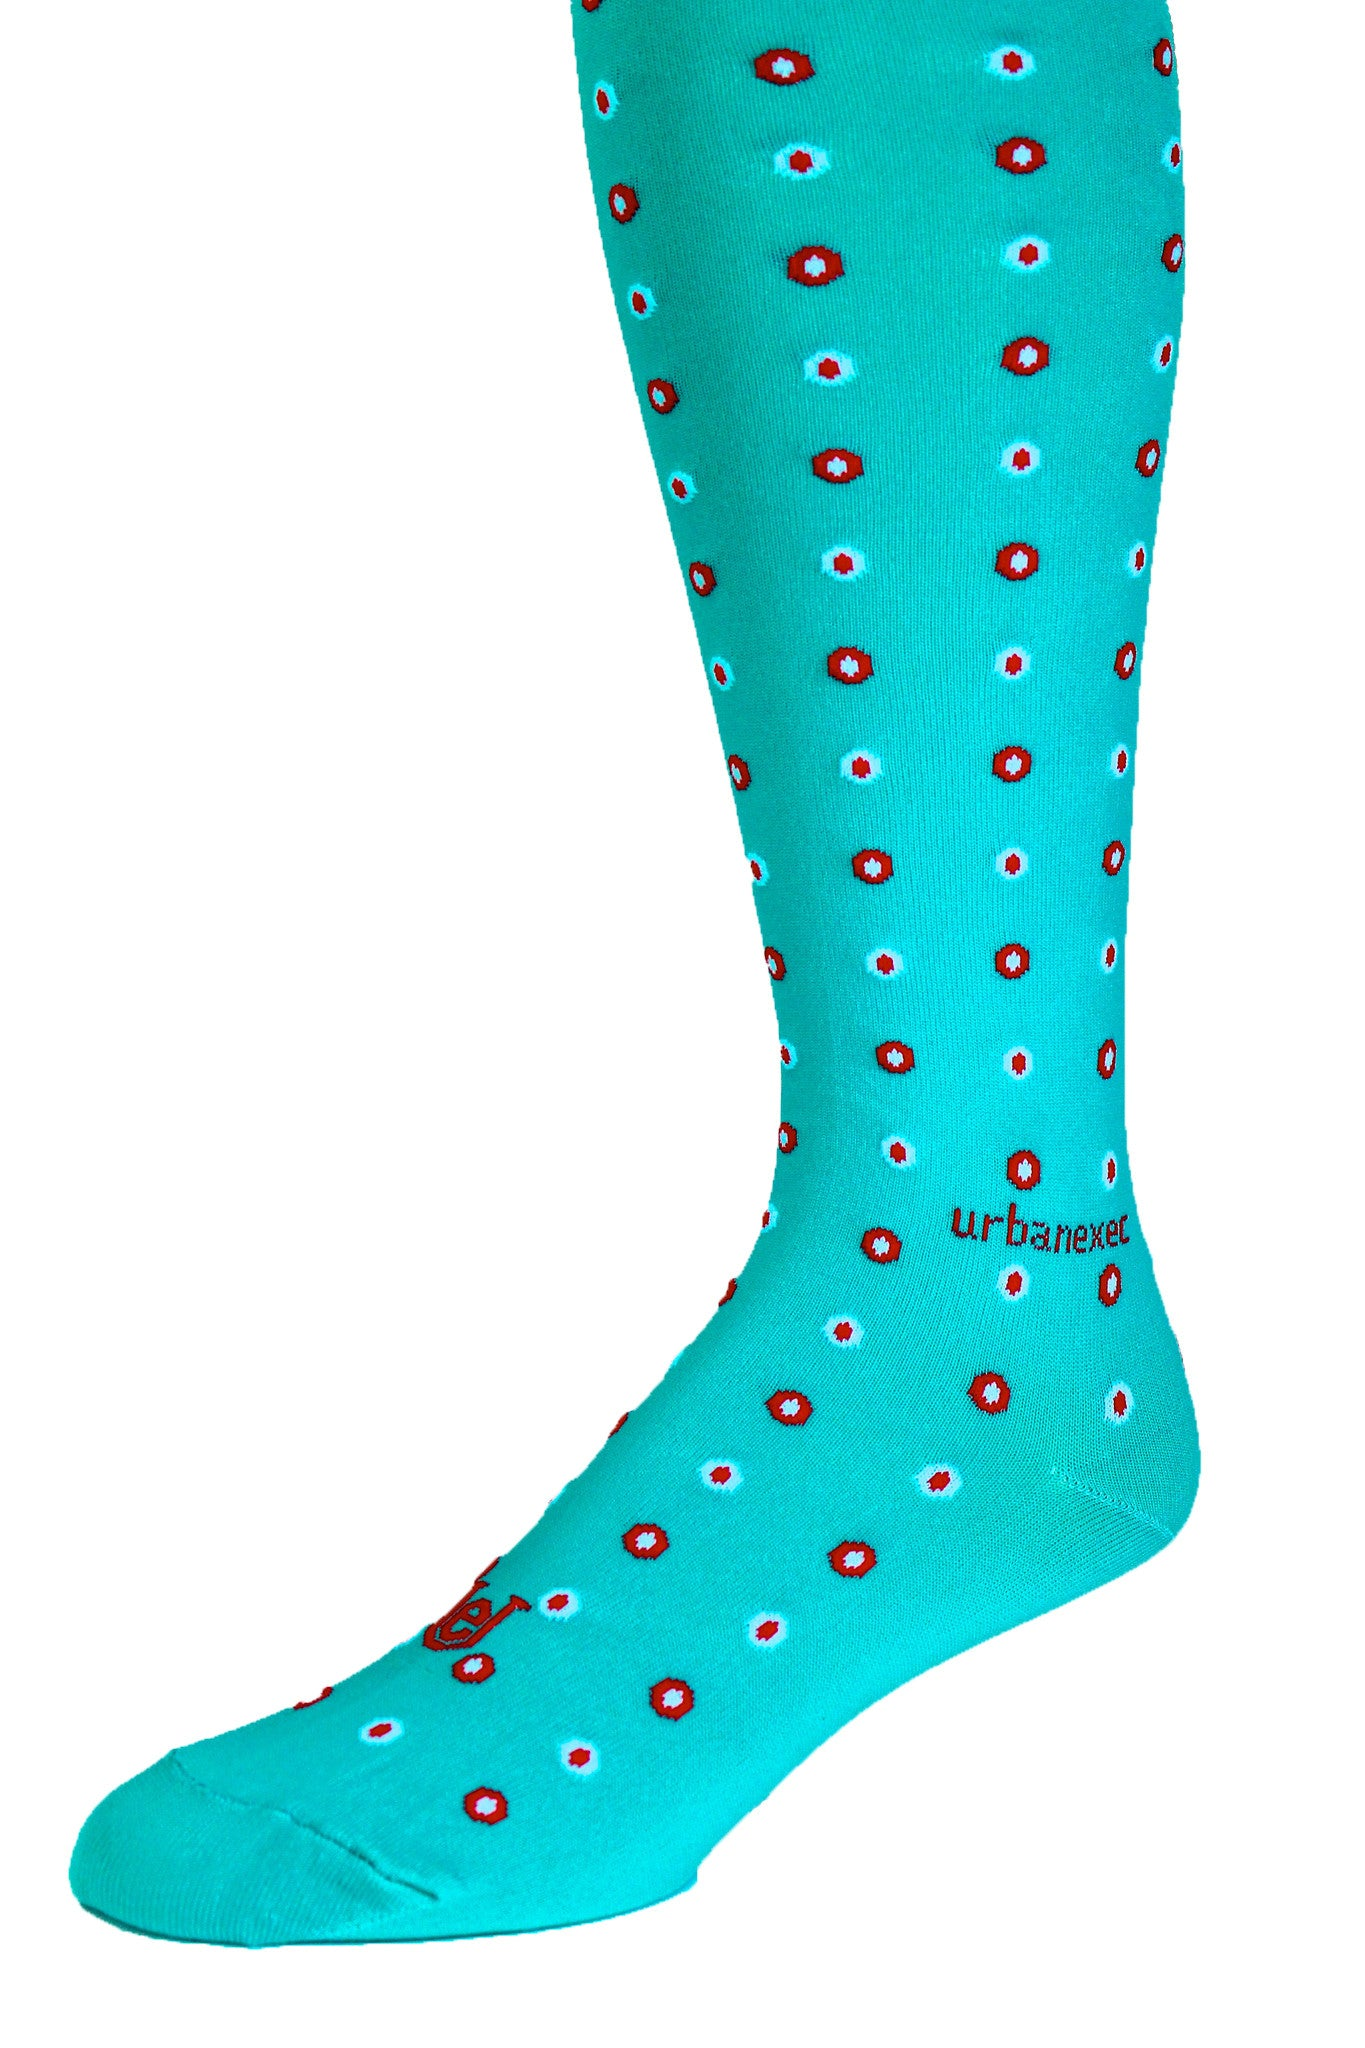 Double Dot Teal with Red and Sky Blue